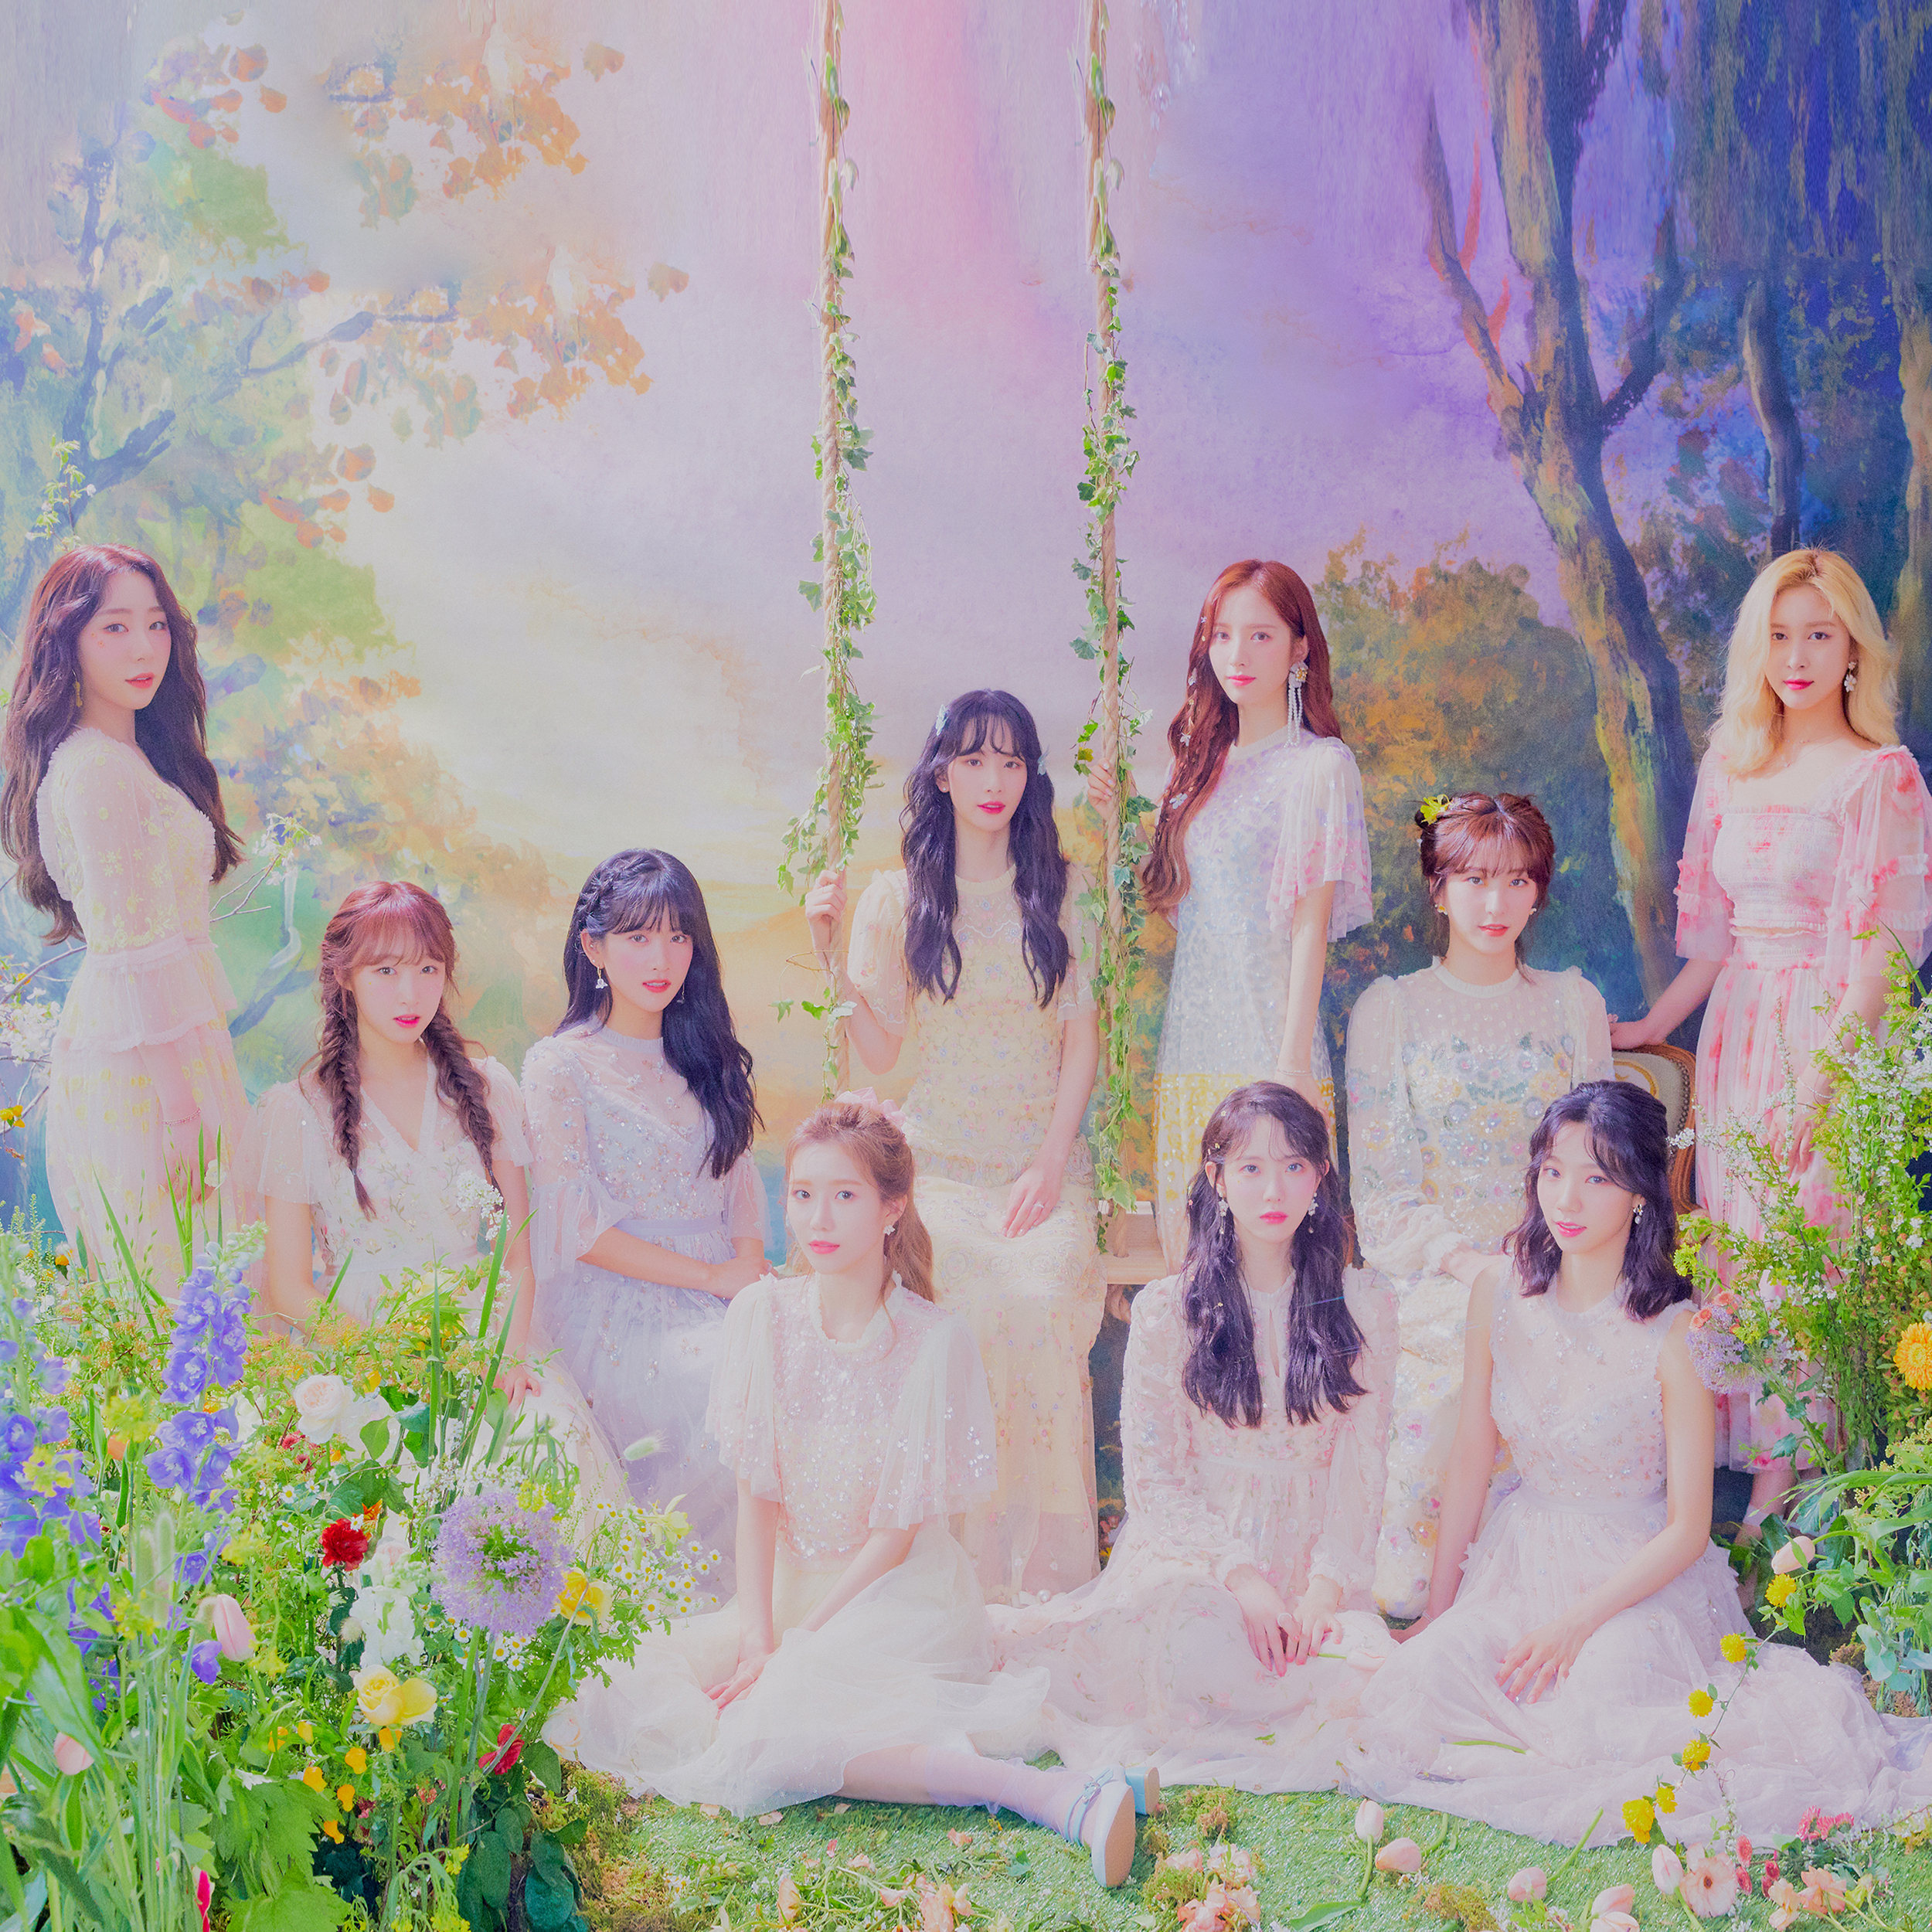 wjsn_neverland_concept_all_group.jpg